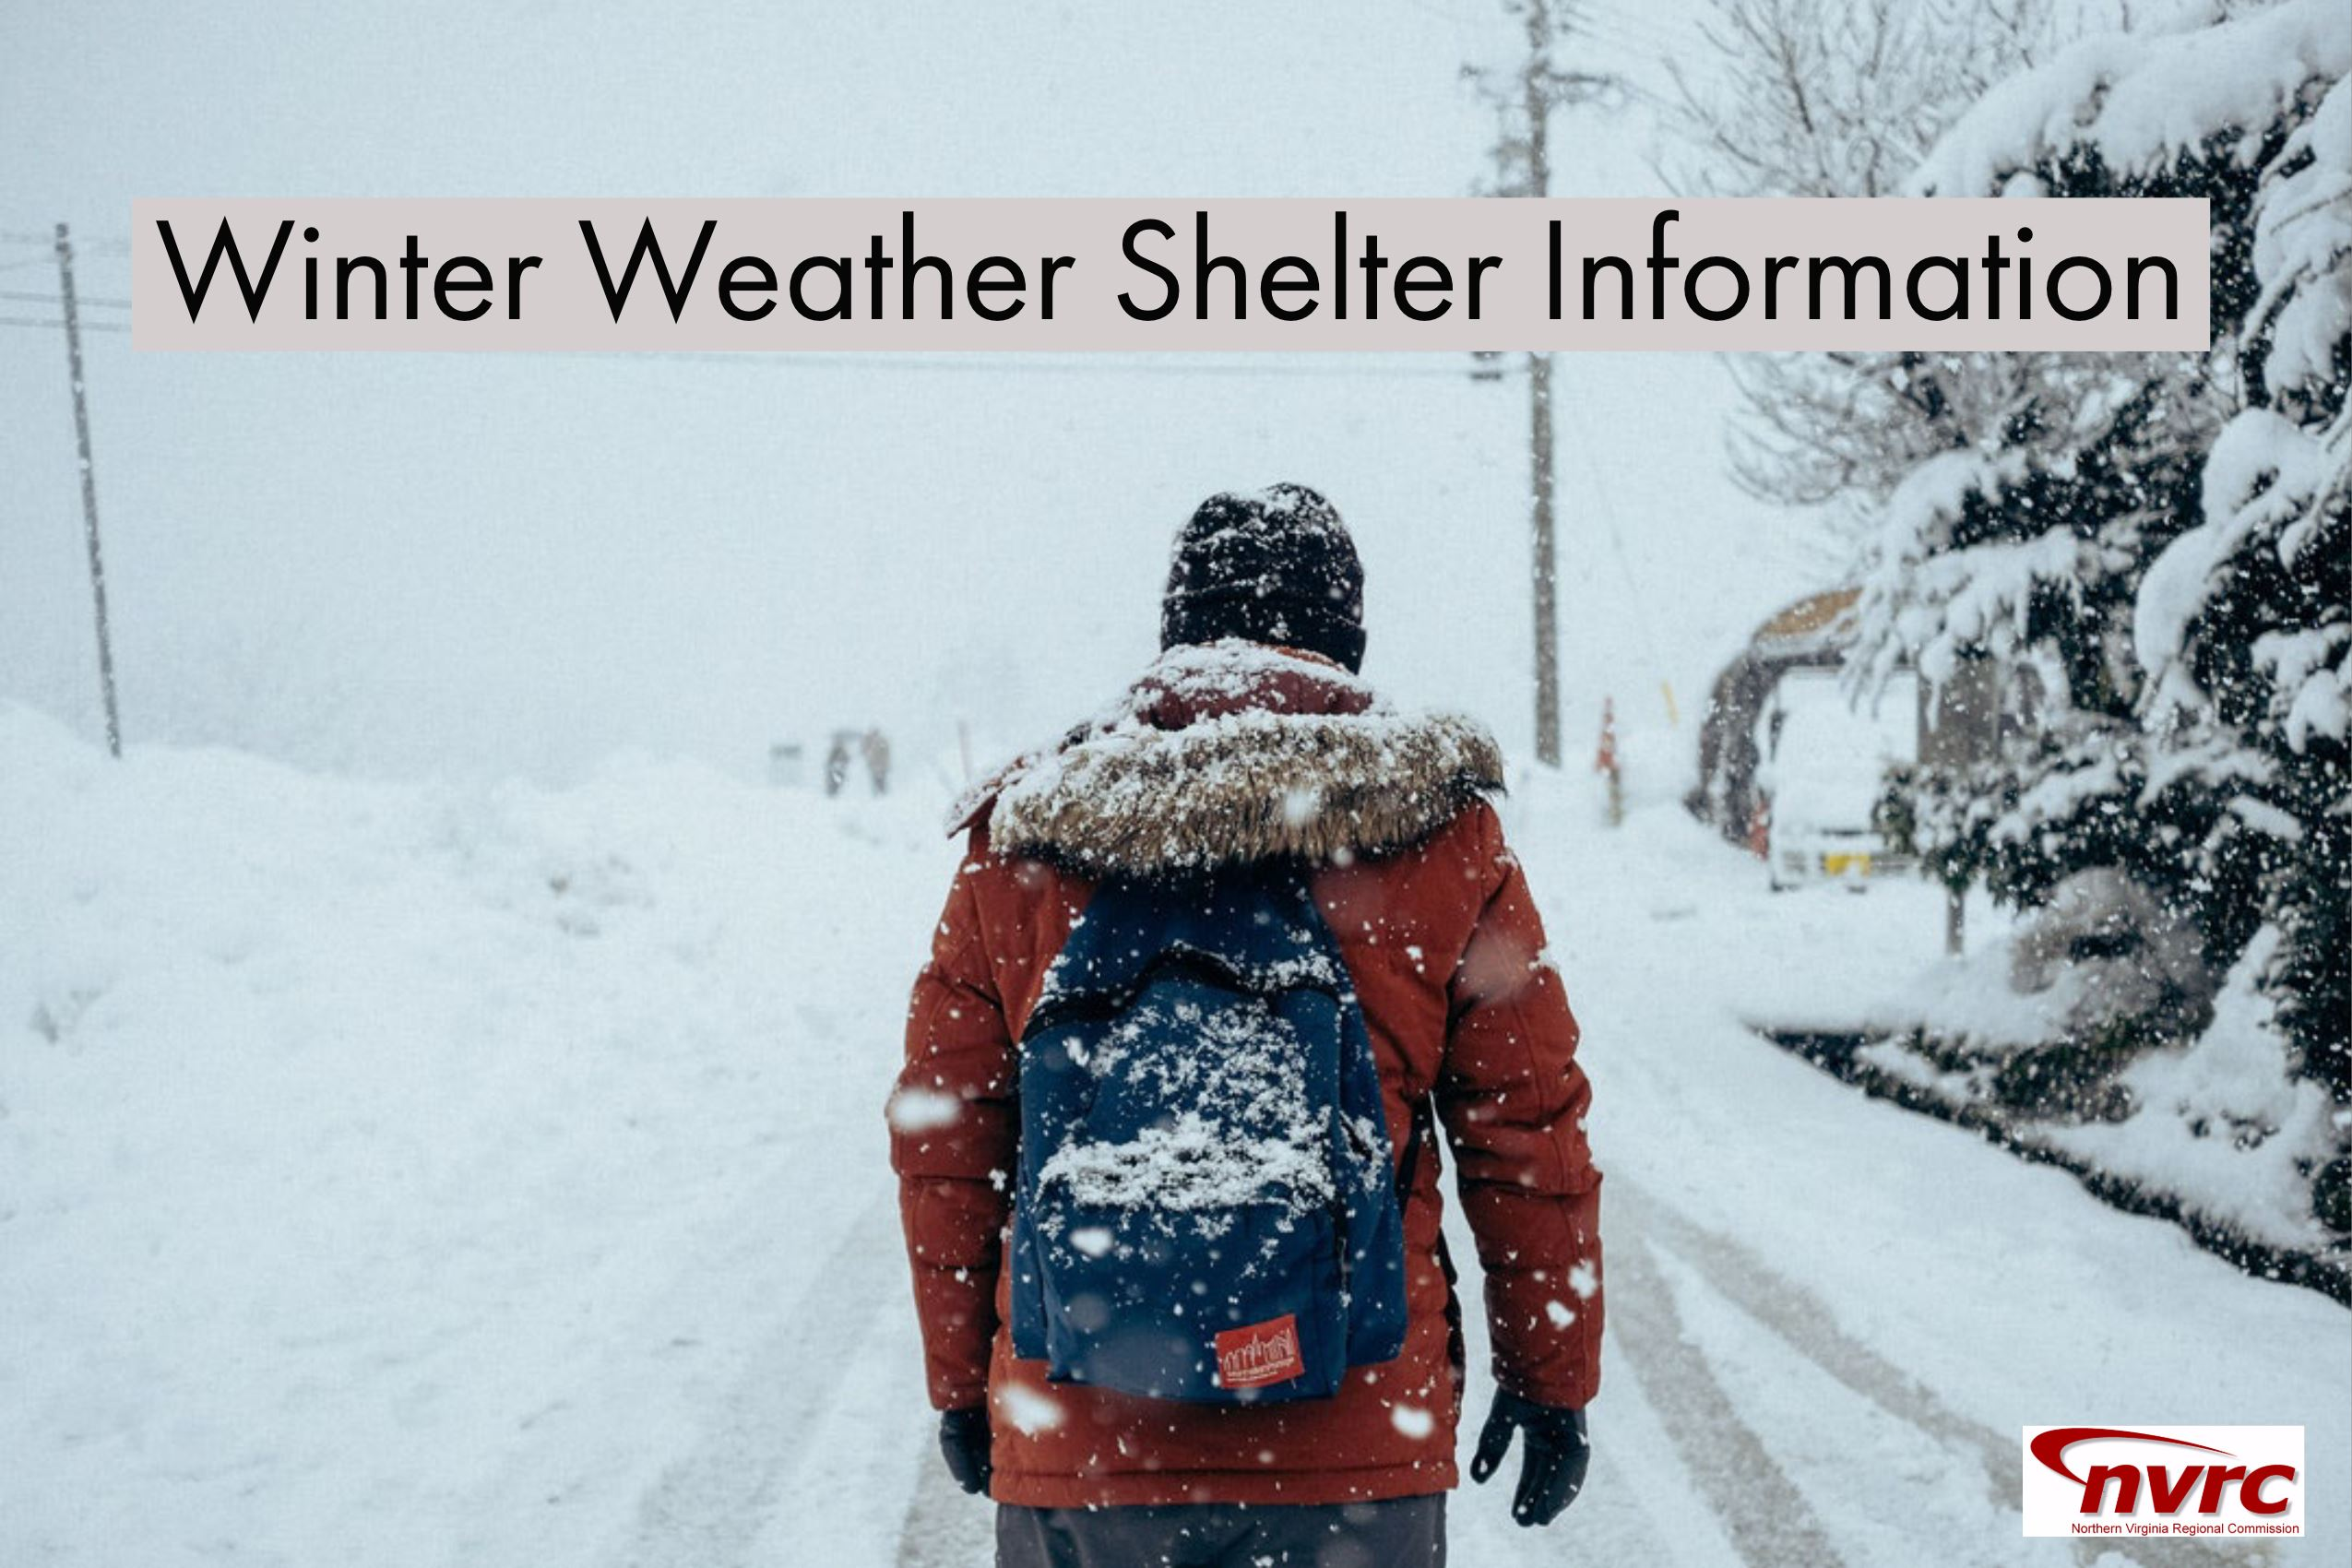 Winter Weather Shelter Information